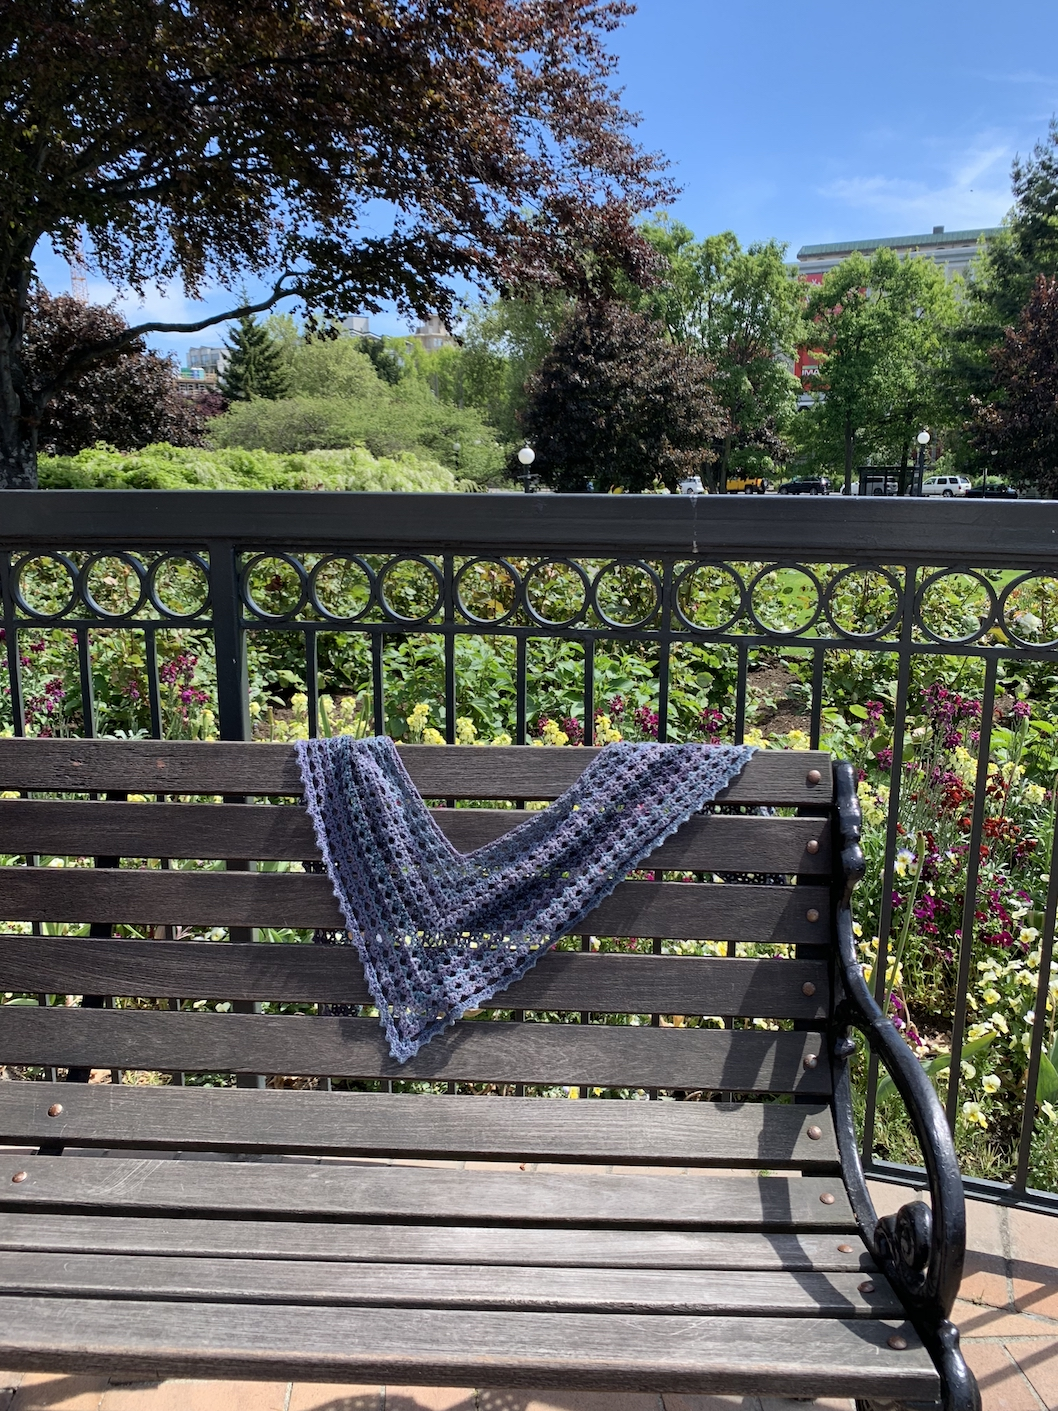 Scarf on bench with flowers in the background.